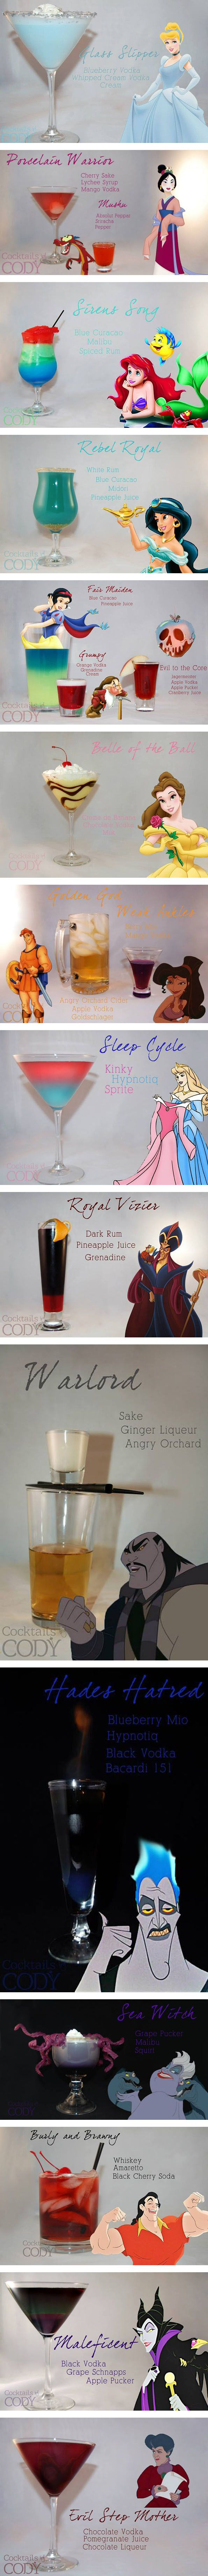 Disney princess themed cocktails..